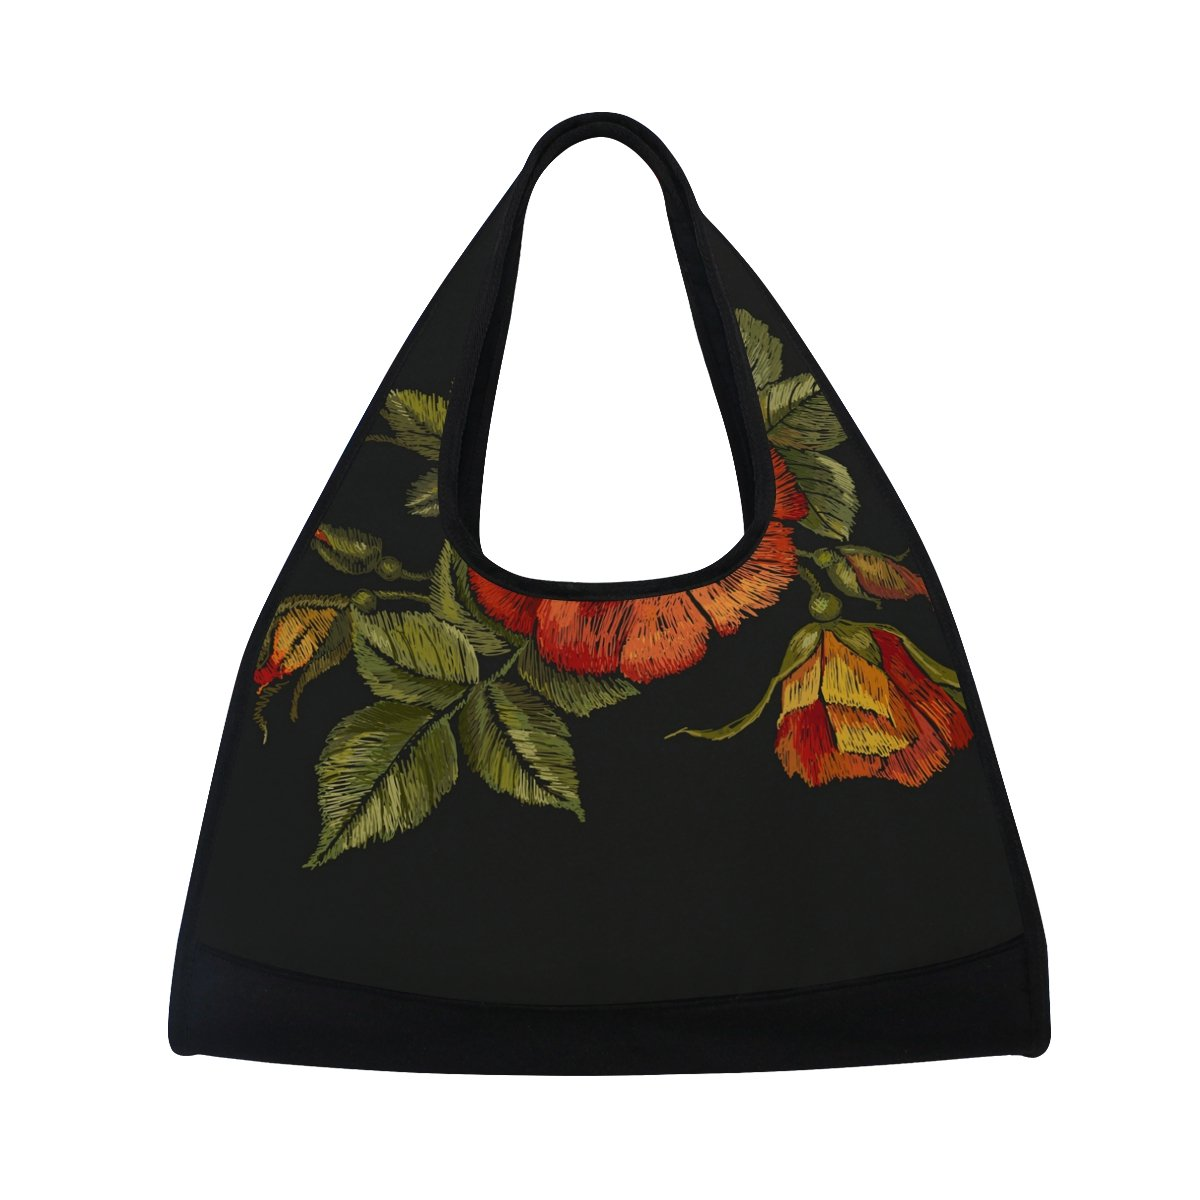 AHOMY Sports Gym Bag Poppy Flowers Leaf Embroidery Duffel Bag Travel Shoulder Bag